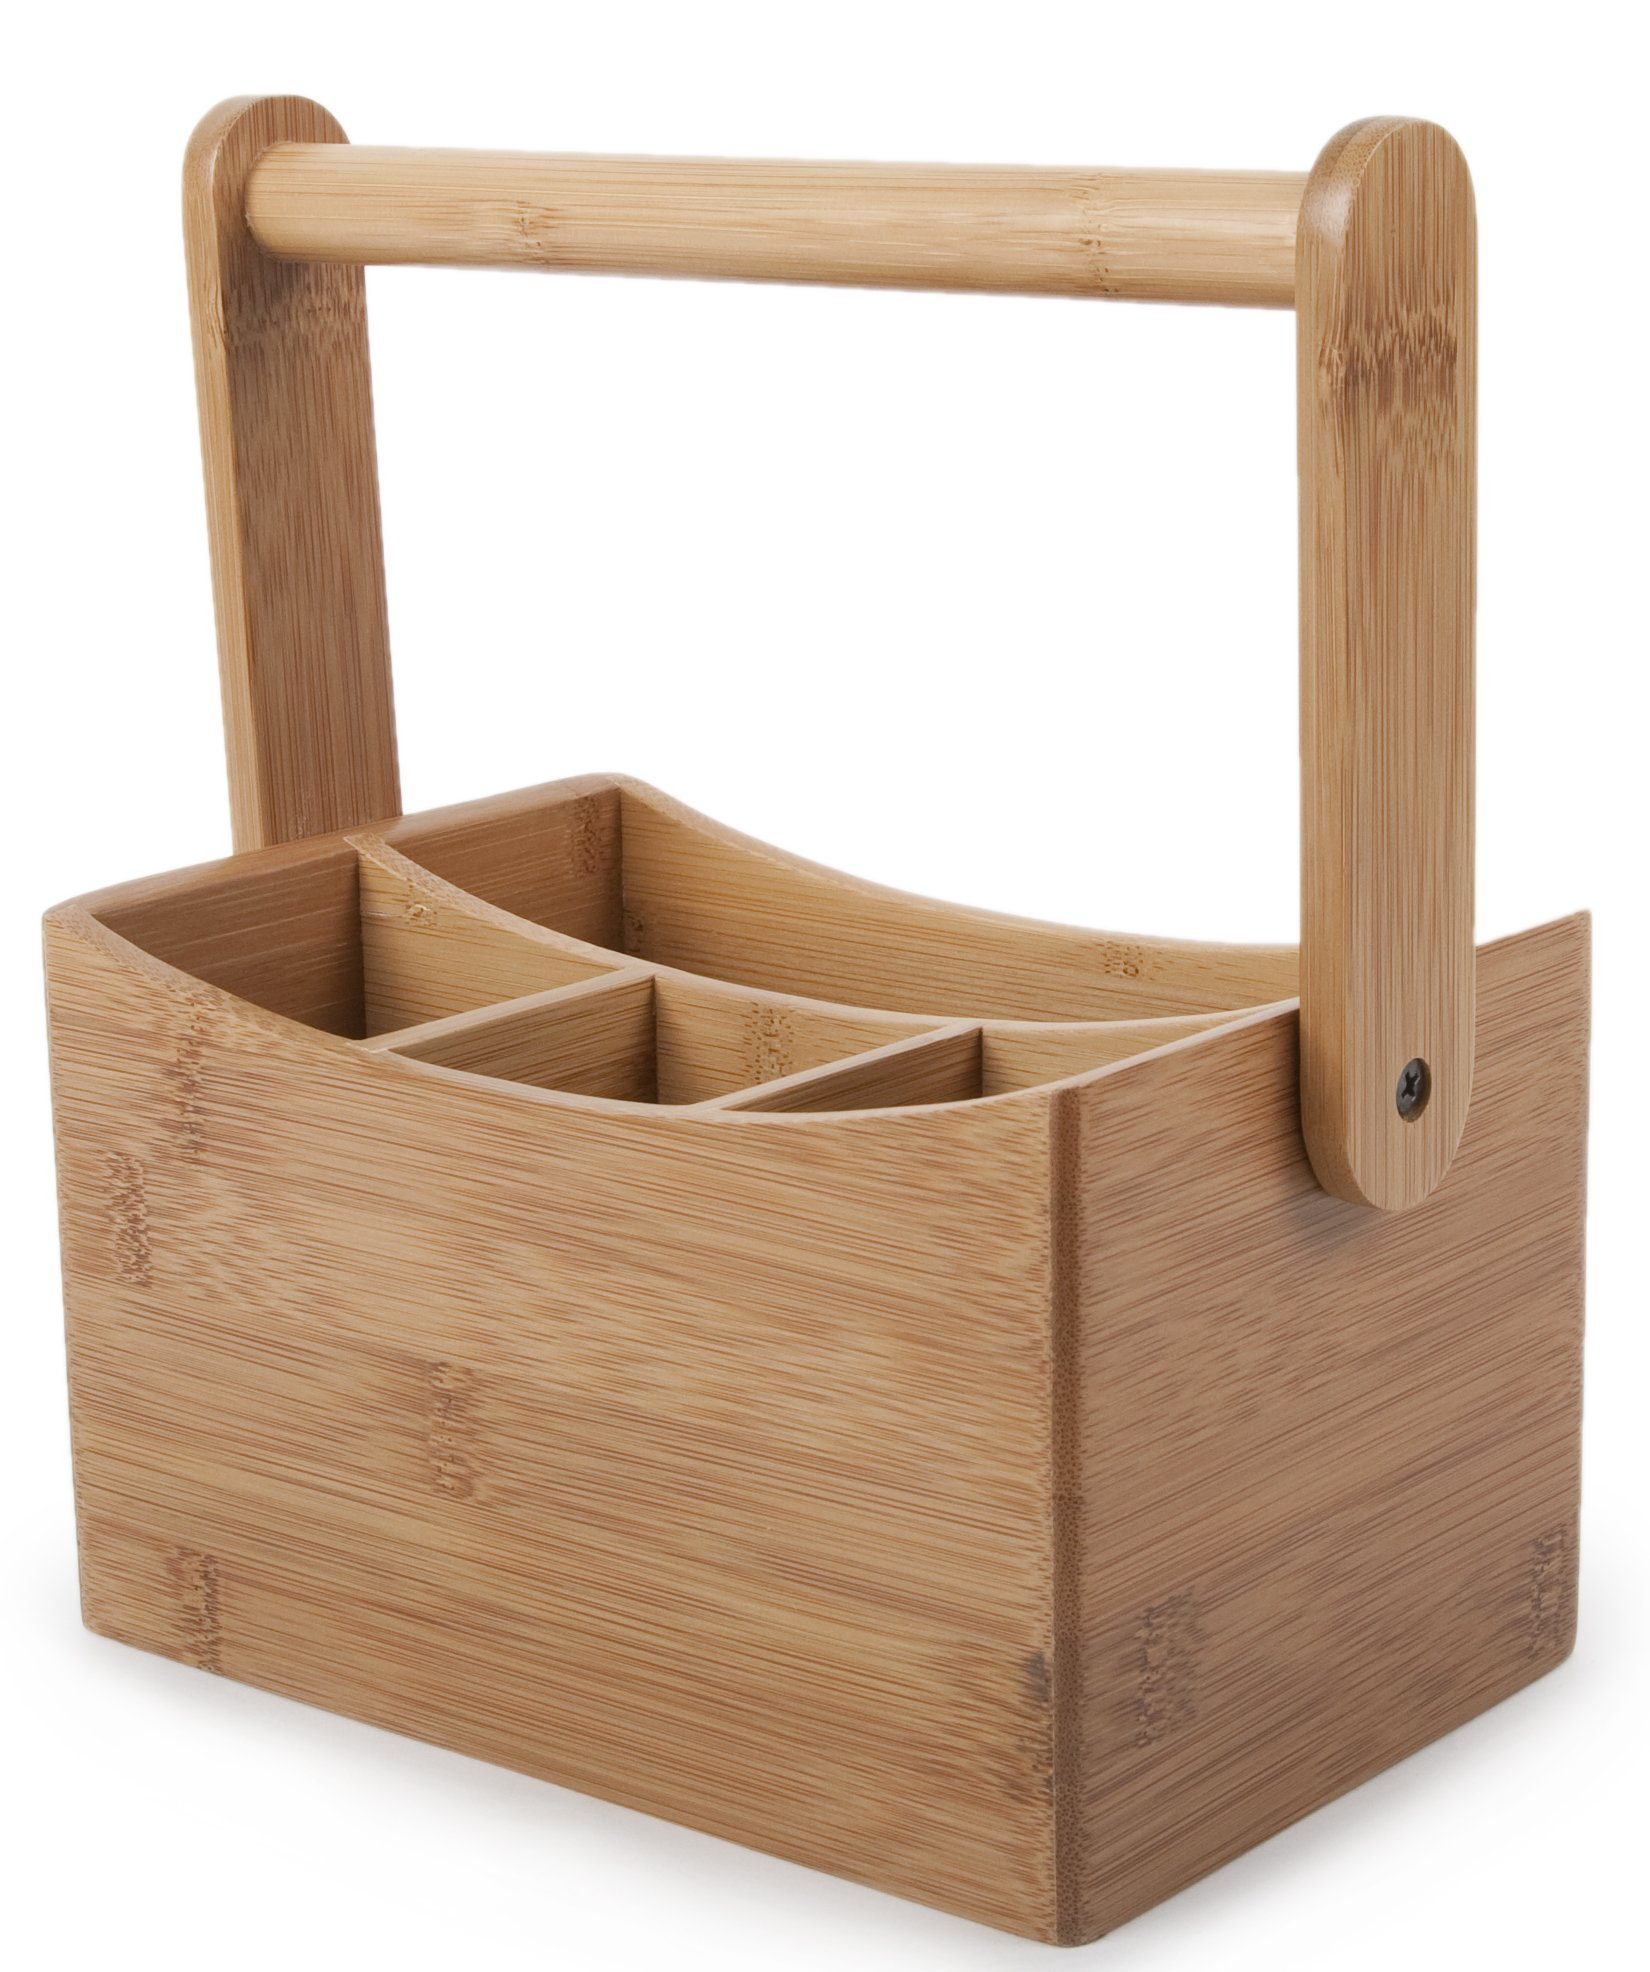 Core Home CTLH-355 9'' X 4.8'' X 6.5'' Natural Core Bamboo Cutlery Caddy